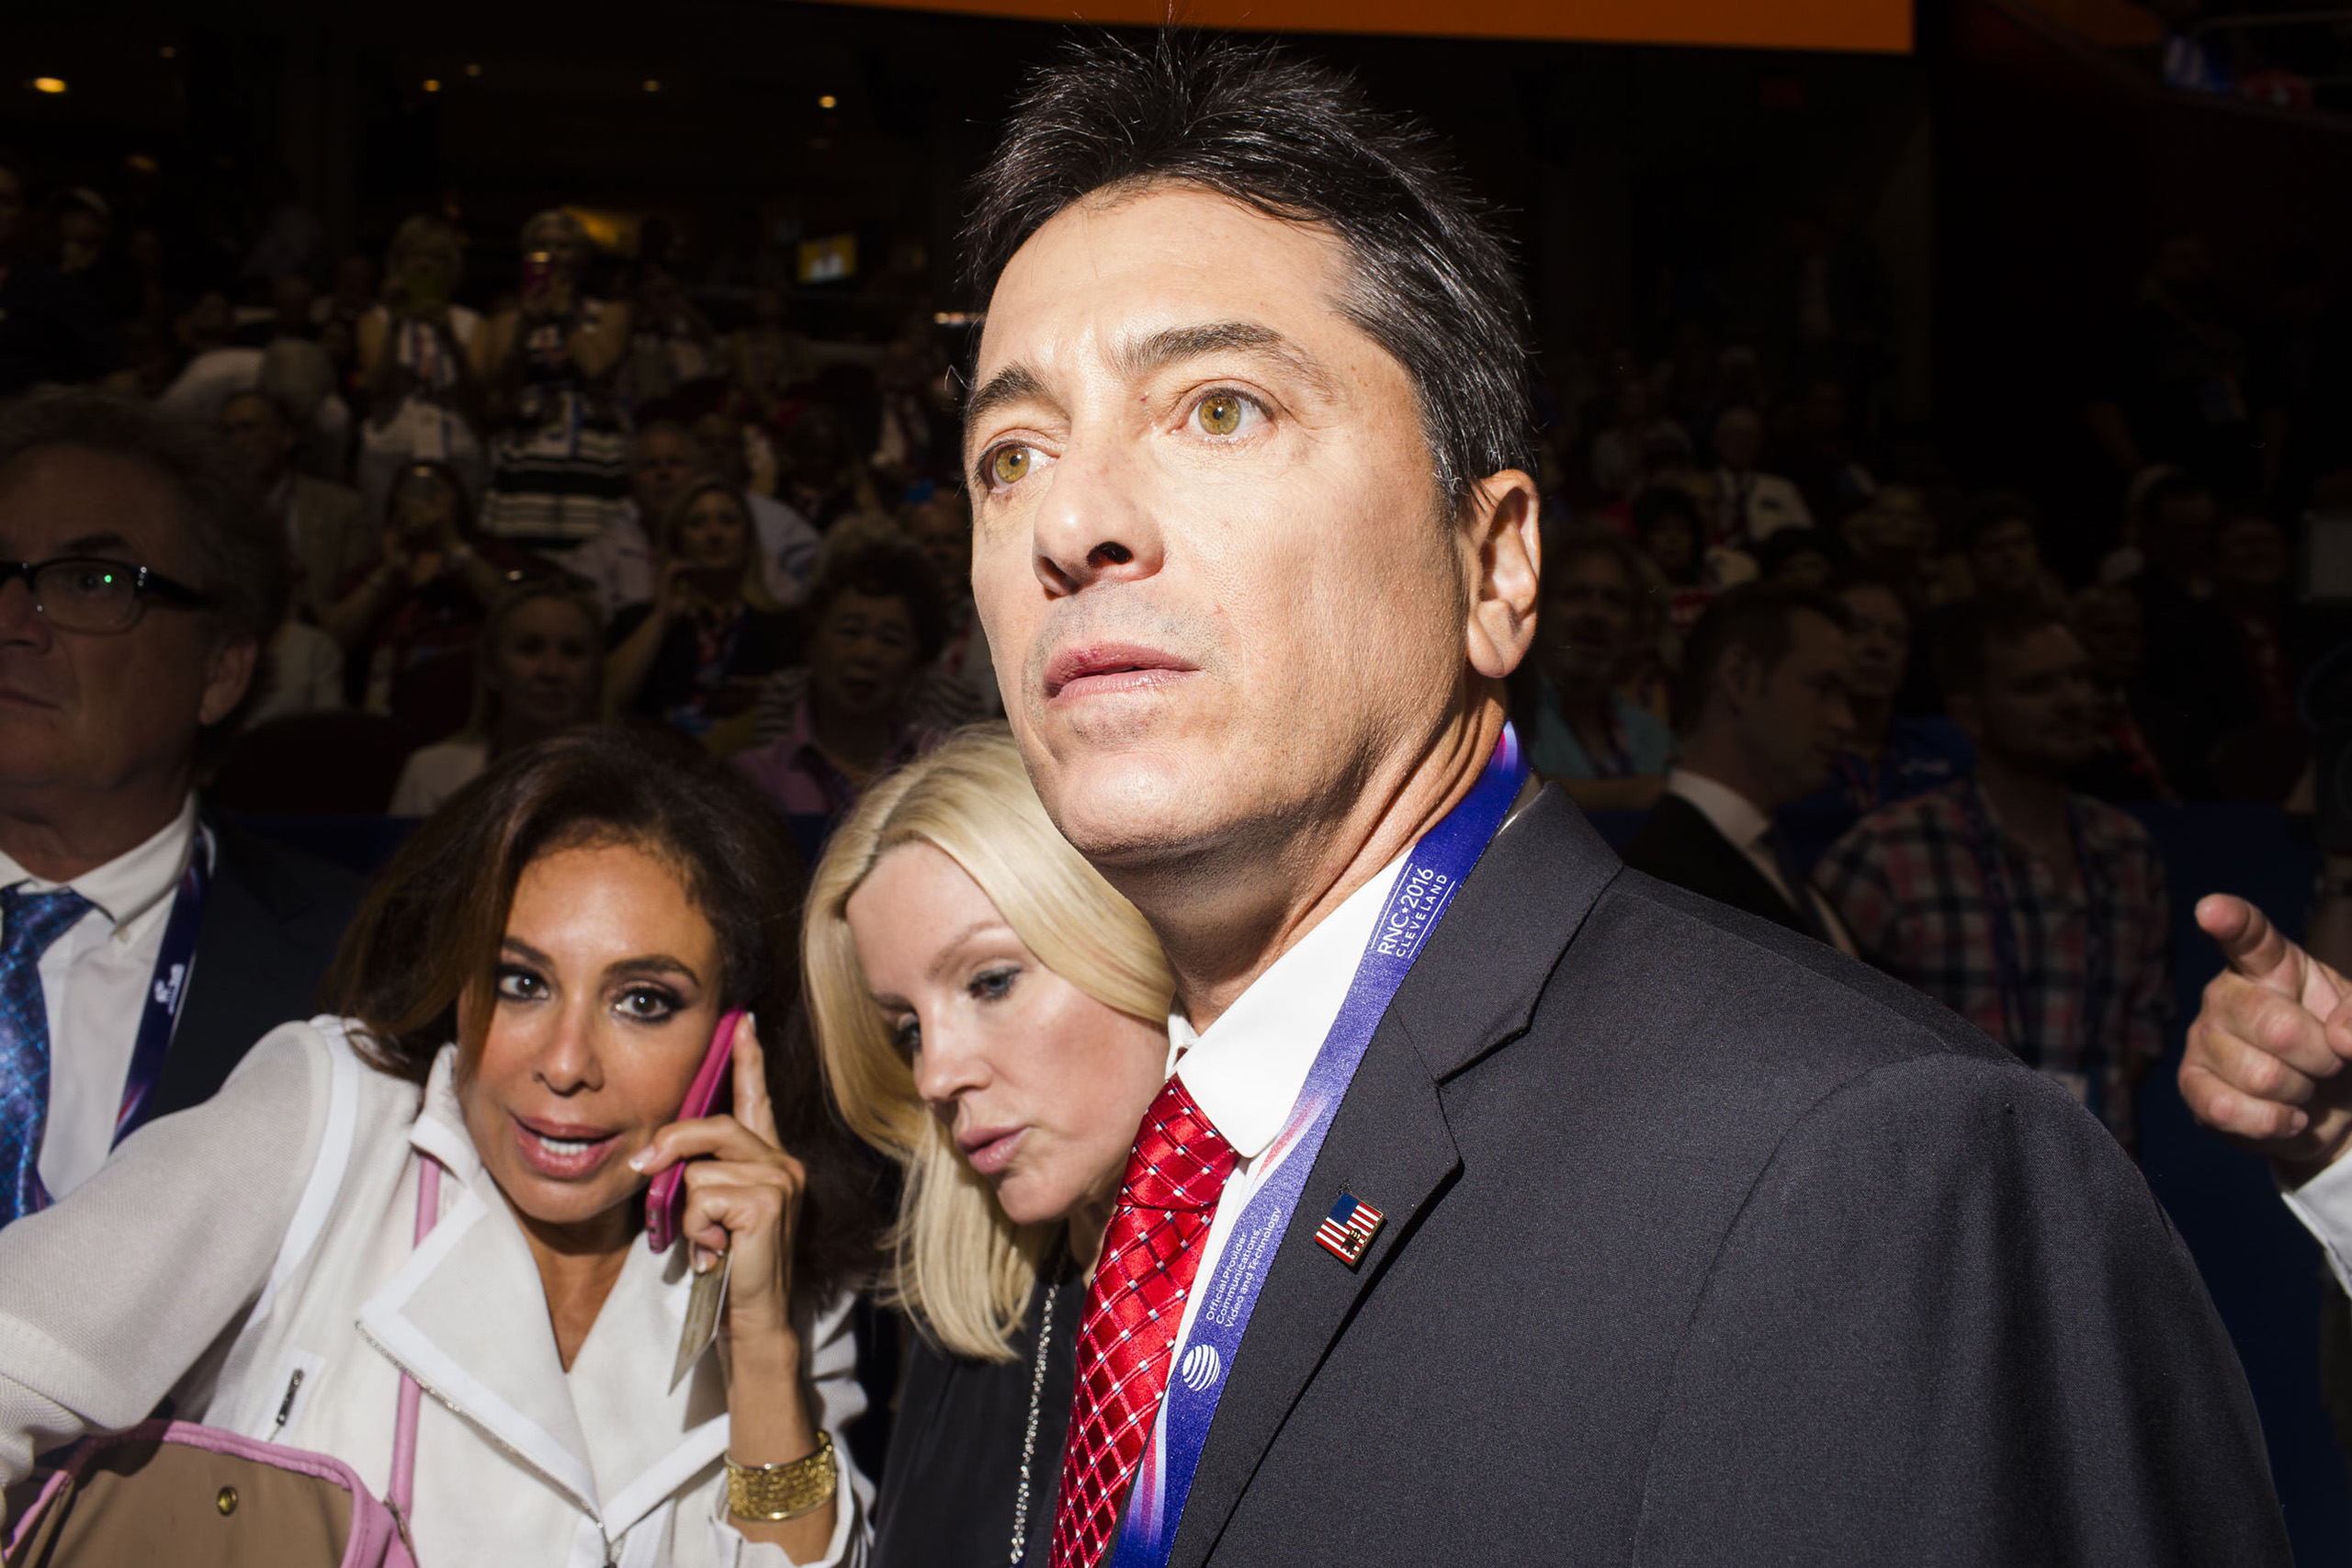 Actor Scott Baio after his speech, on the floor at the Republican National Convention, July 18, 2016 in Cleveland.